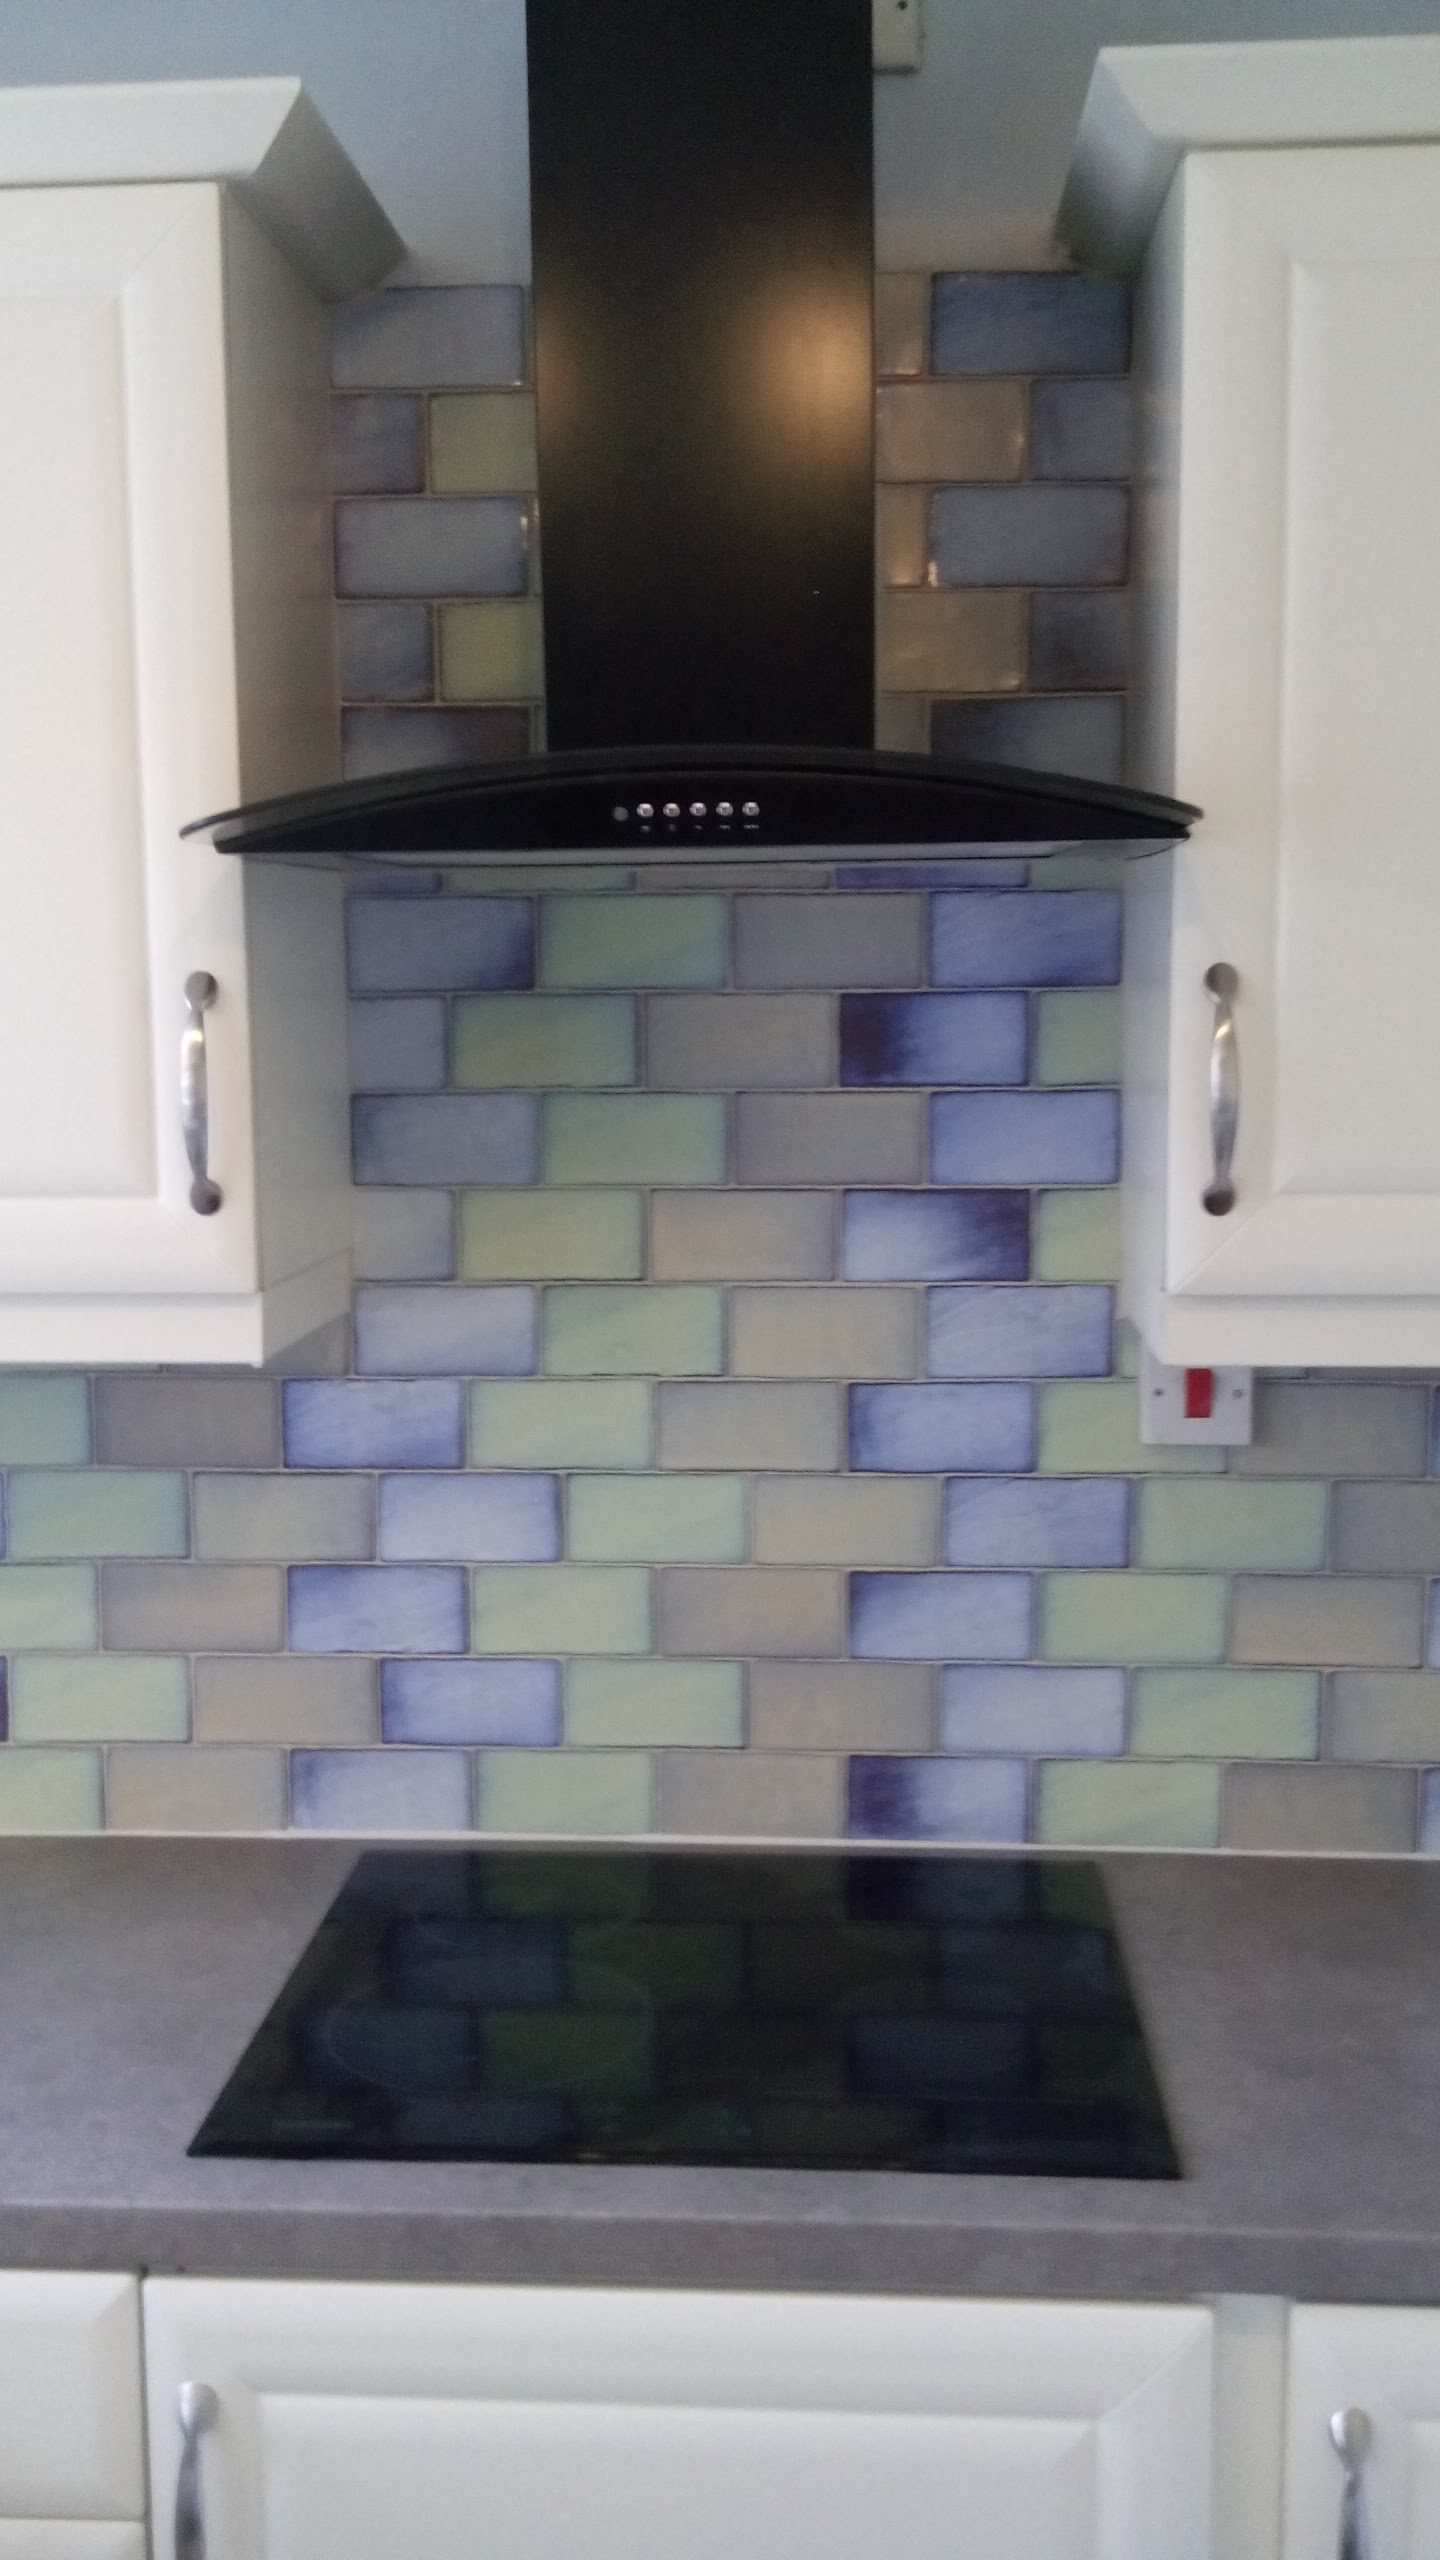 Emery professional tiling services about us ppazfo